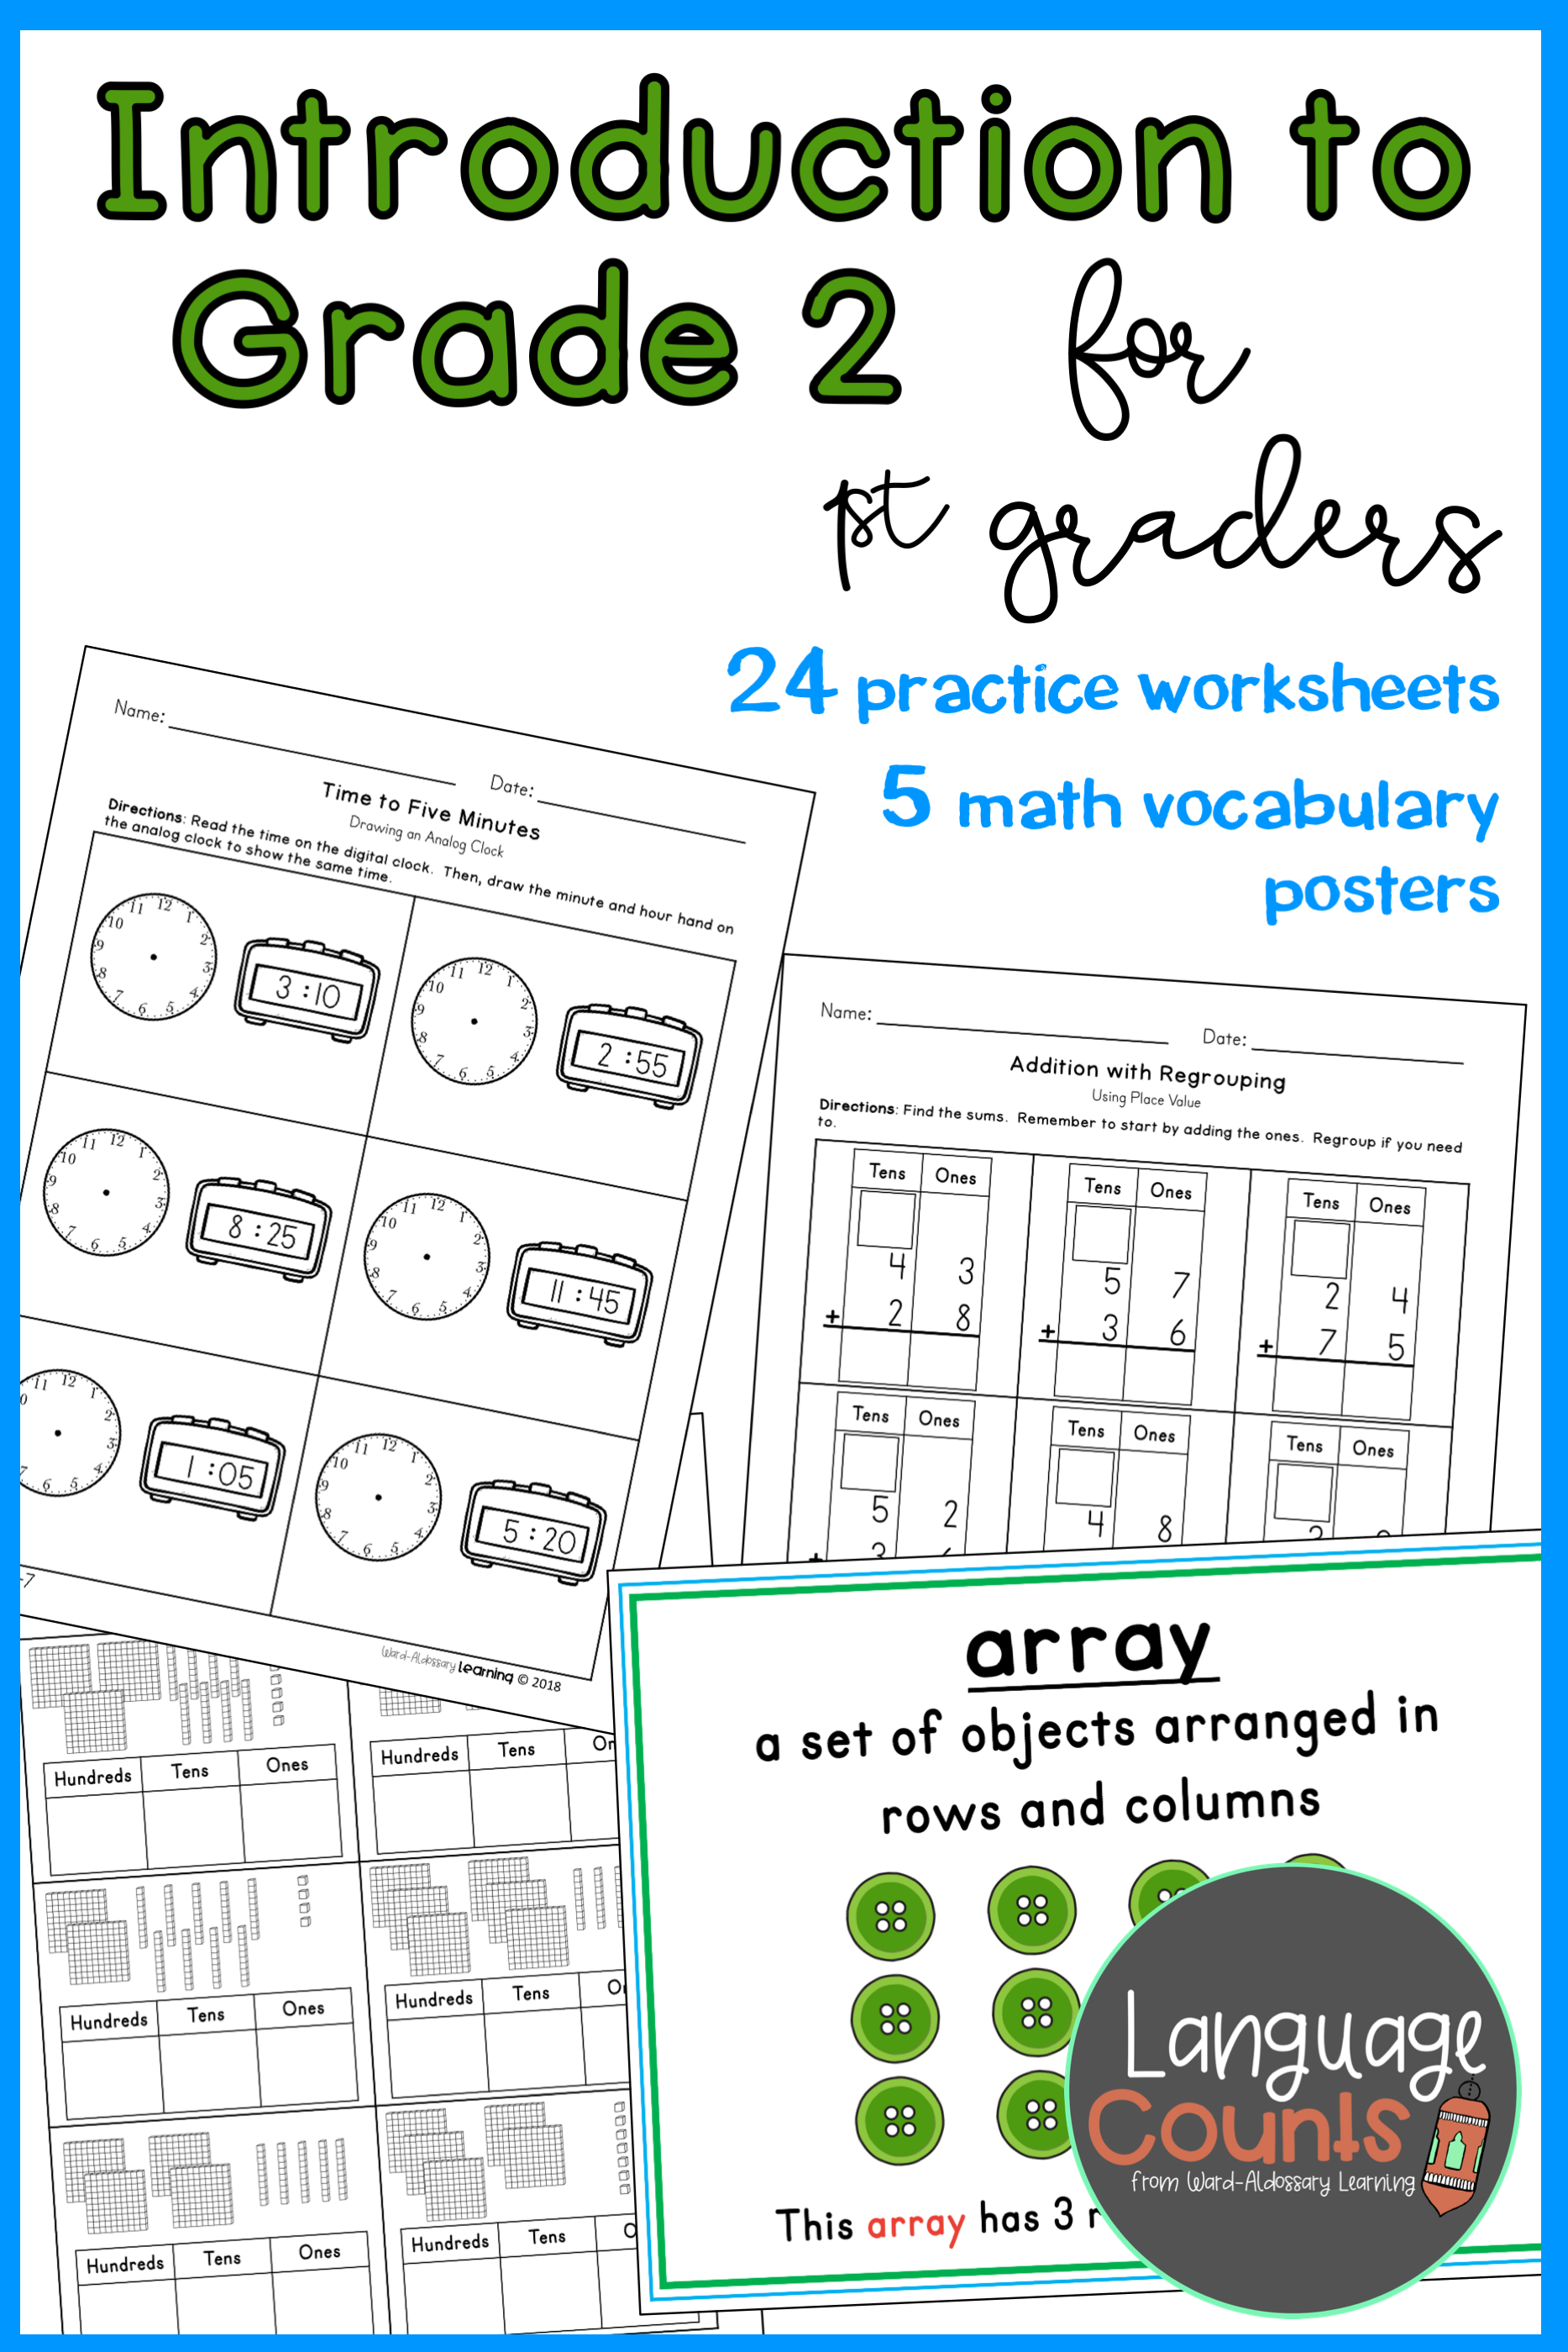 Introduces Students To 2nd Grade Concepts Such As Hundreds Time In Five Minute Intervals Arrays An 2nd Grade Worksheets Envision Math First Grade Worksheets [ 2800 x 1867 Pixel ]